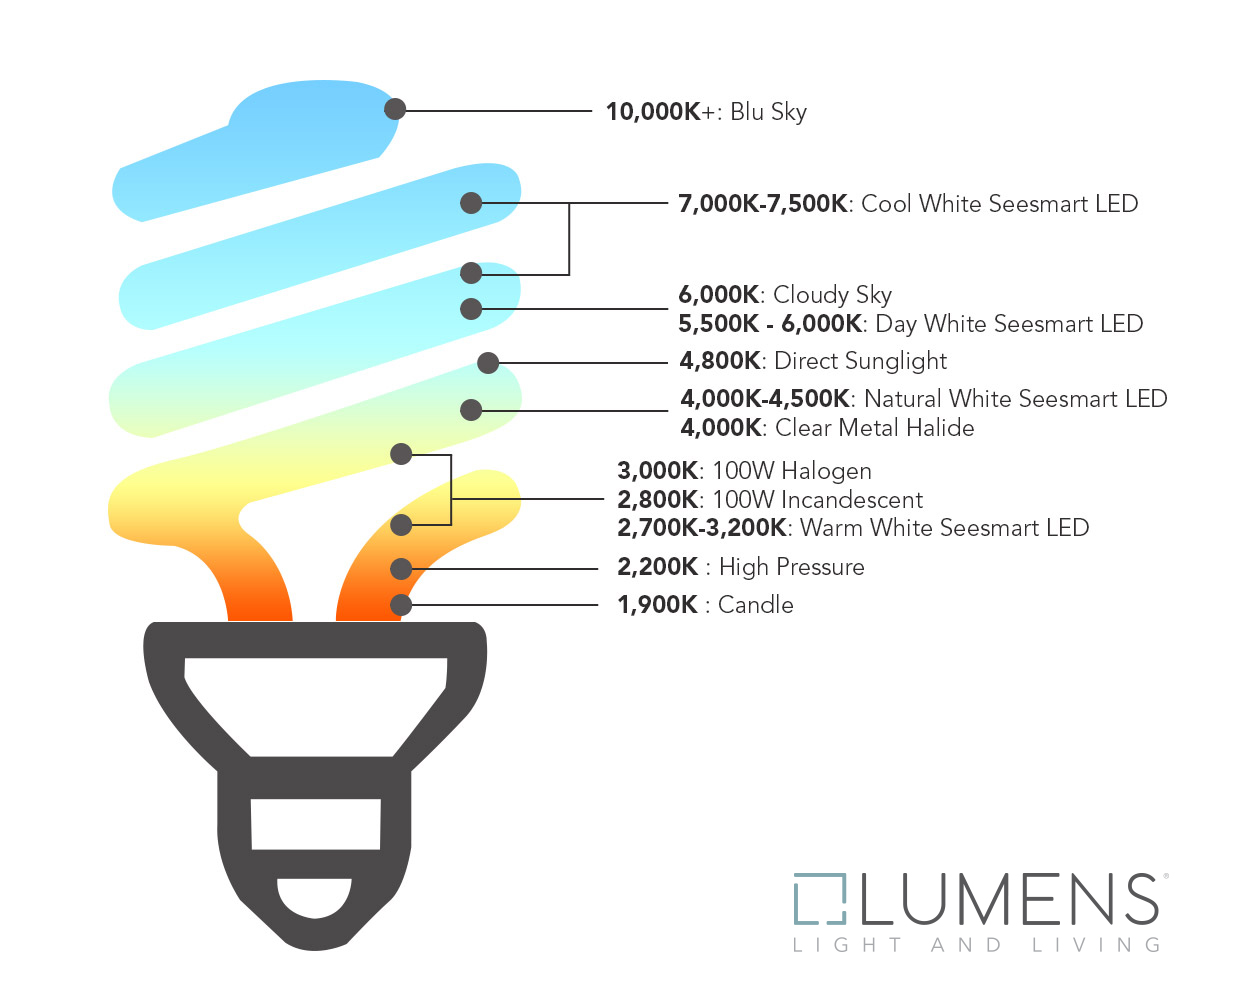 Kelvin Color Temperature Lighting Color Scale At Lumens Com